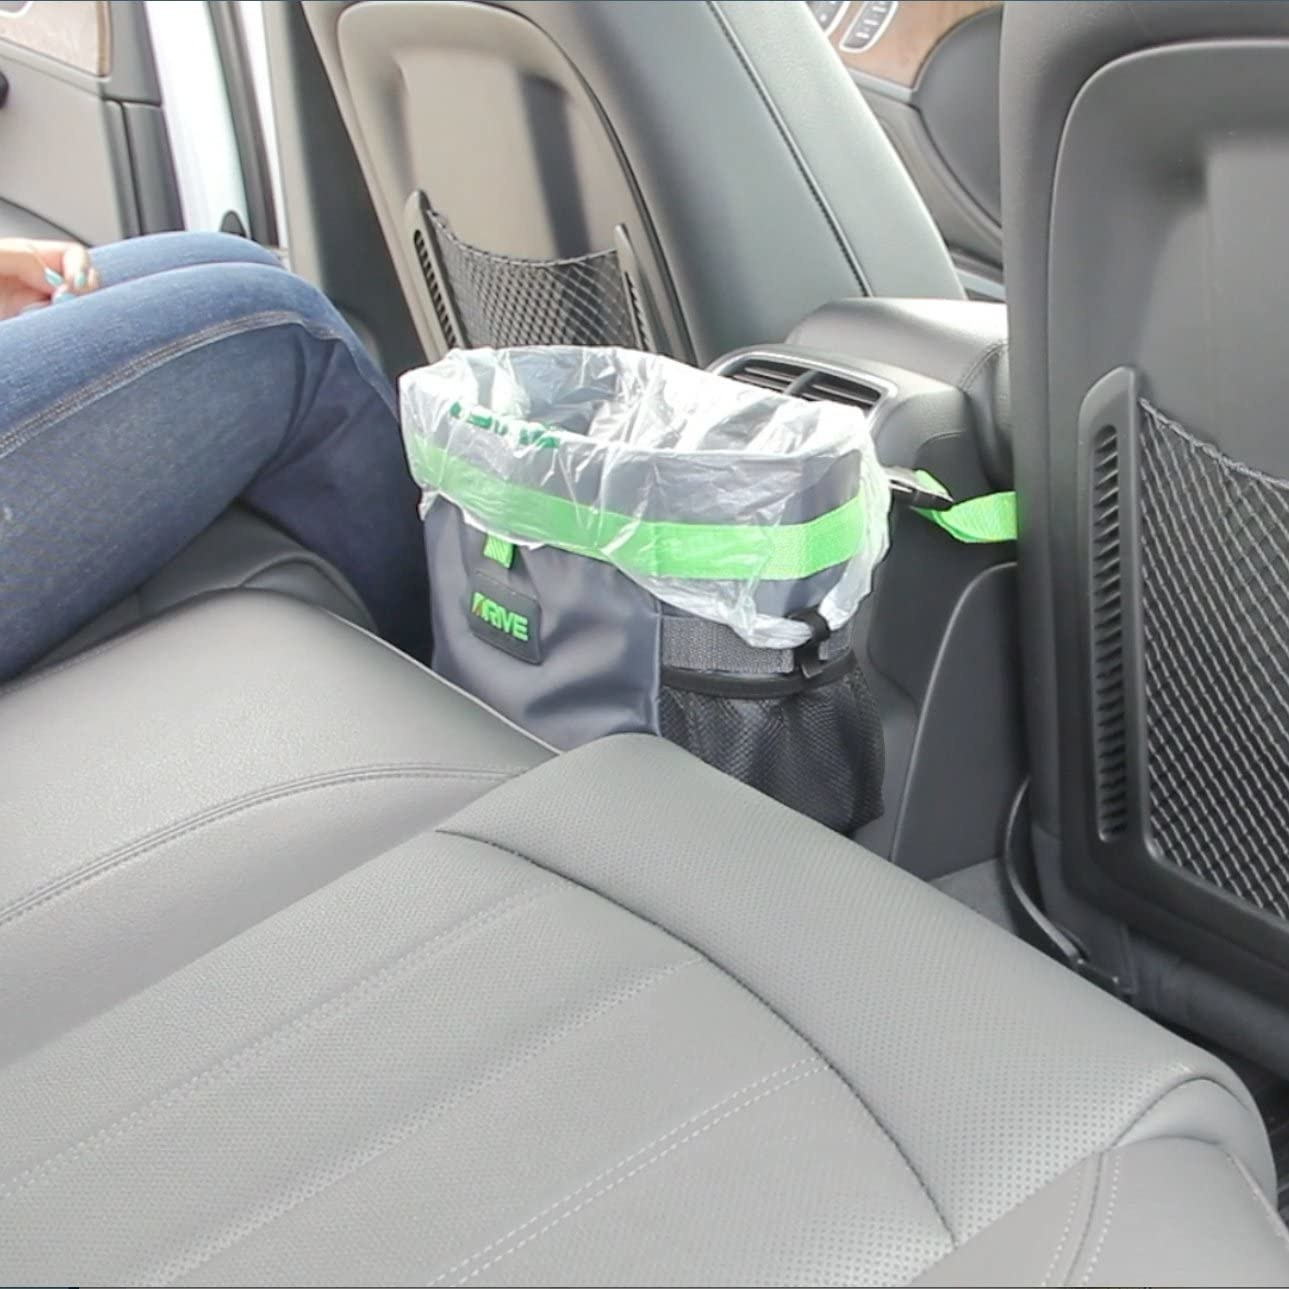 The large garbage bin attached to the car console in the backseat